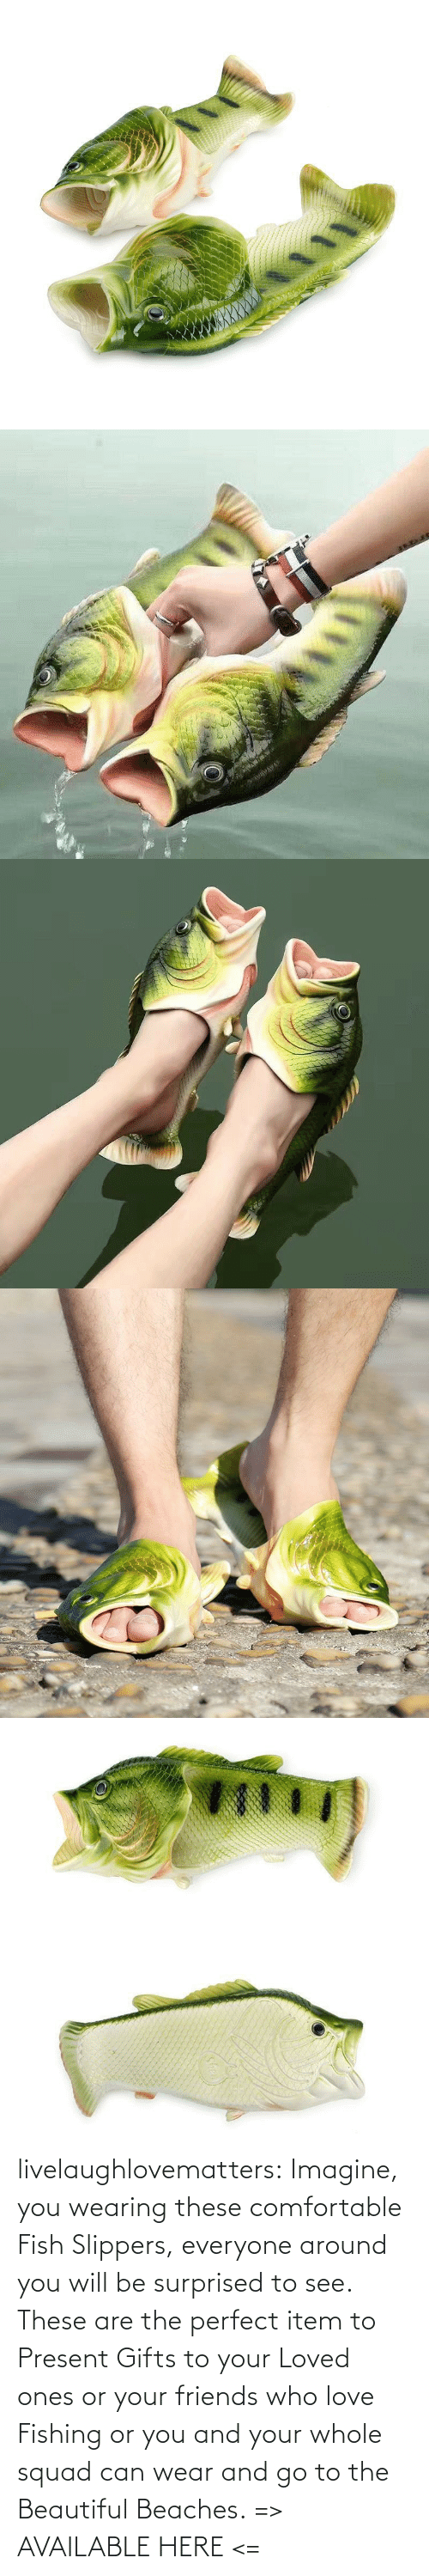 Squad: livelaughlovematters:  Imagine, you wearing these comfortable Fish Slippers, everyone around you will be surprised to see. These are the perfect item to Present Gifts to your Loved ones or your friends who love Fishing or you and your whole squad can wear and go to the Beautiful Beaches.=> AVAILABLE HERE <=